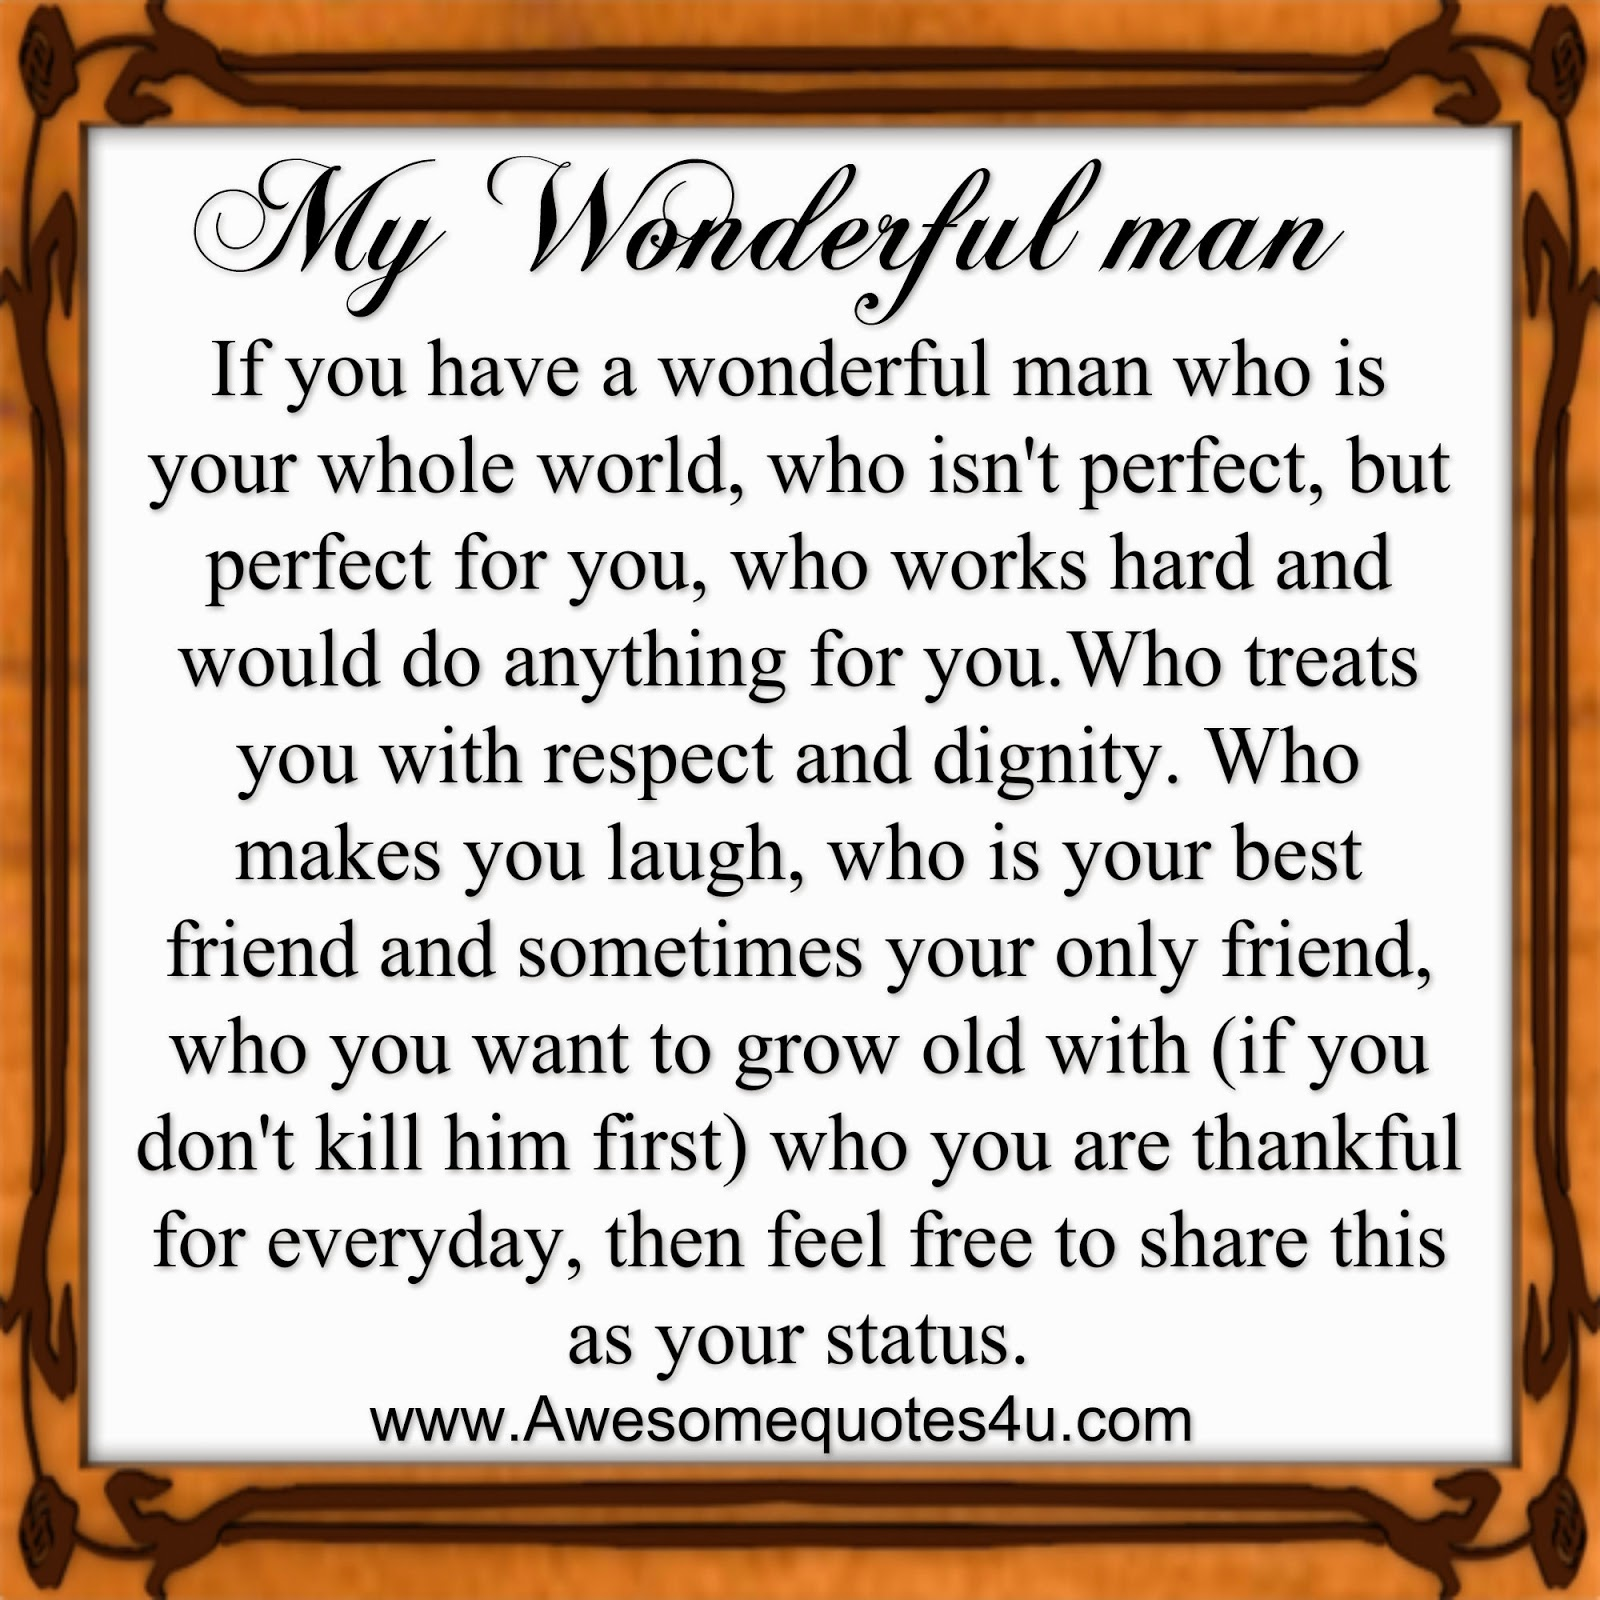 Awesome Quotes My Wonderful Man